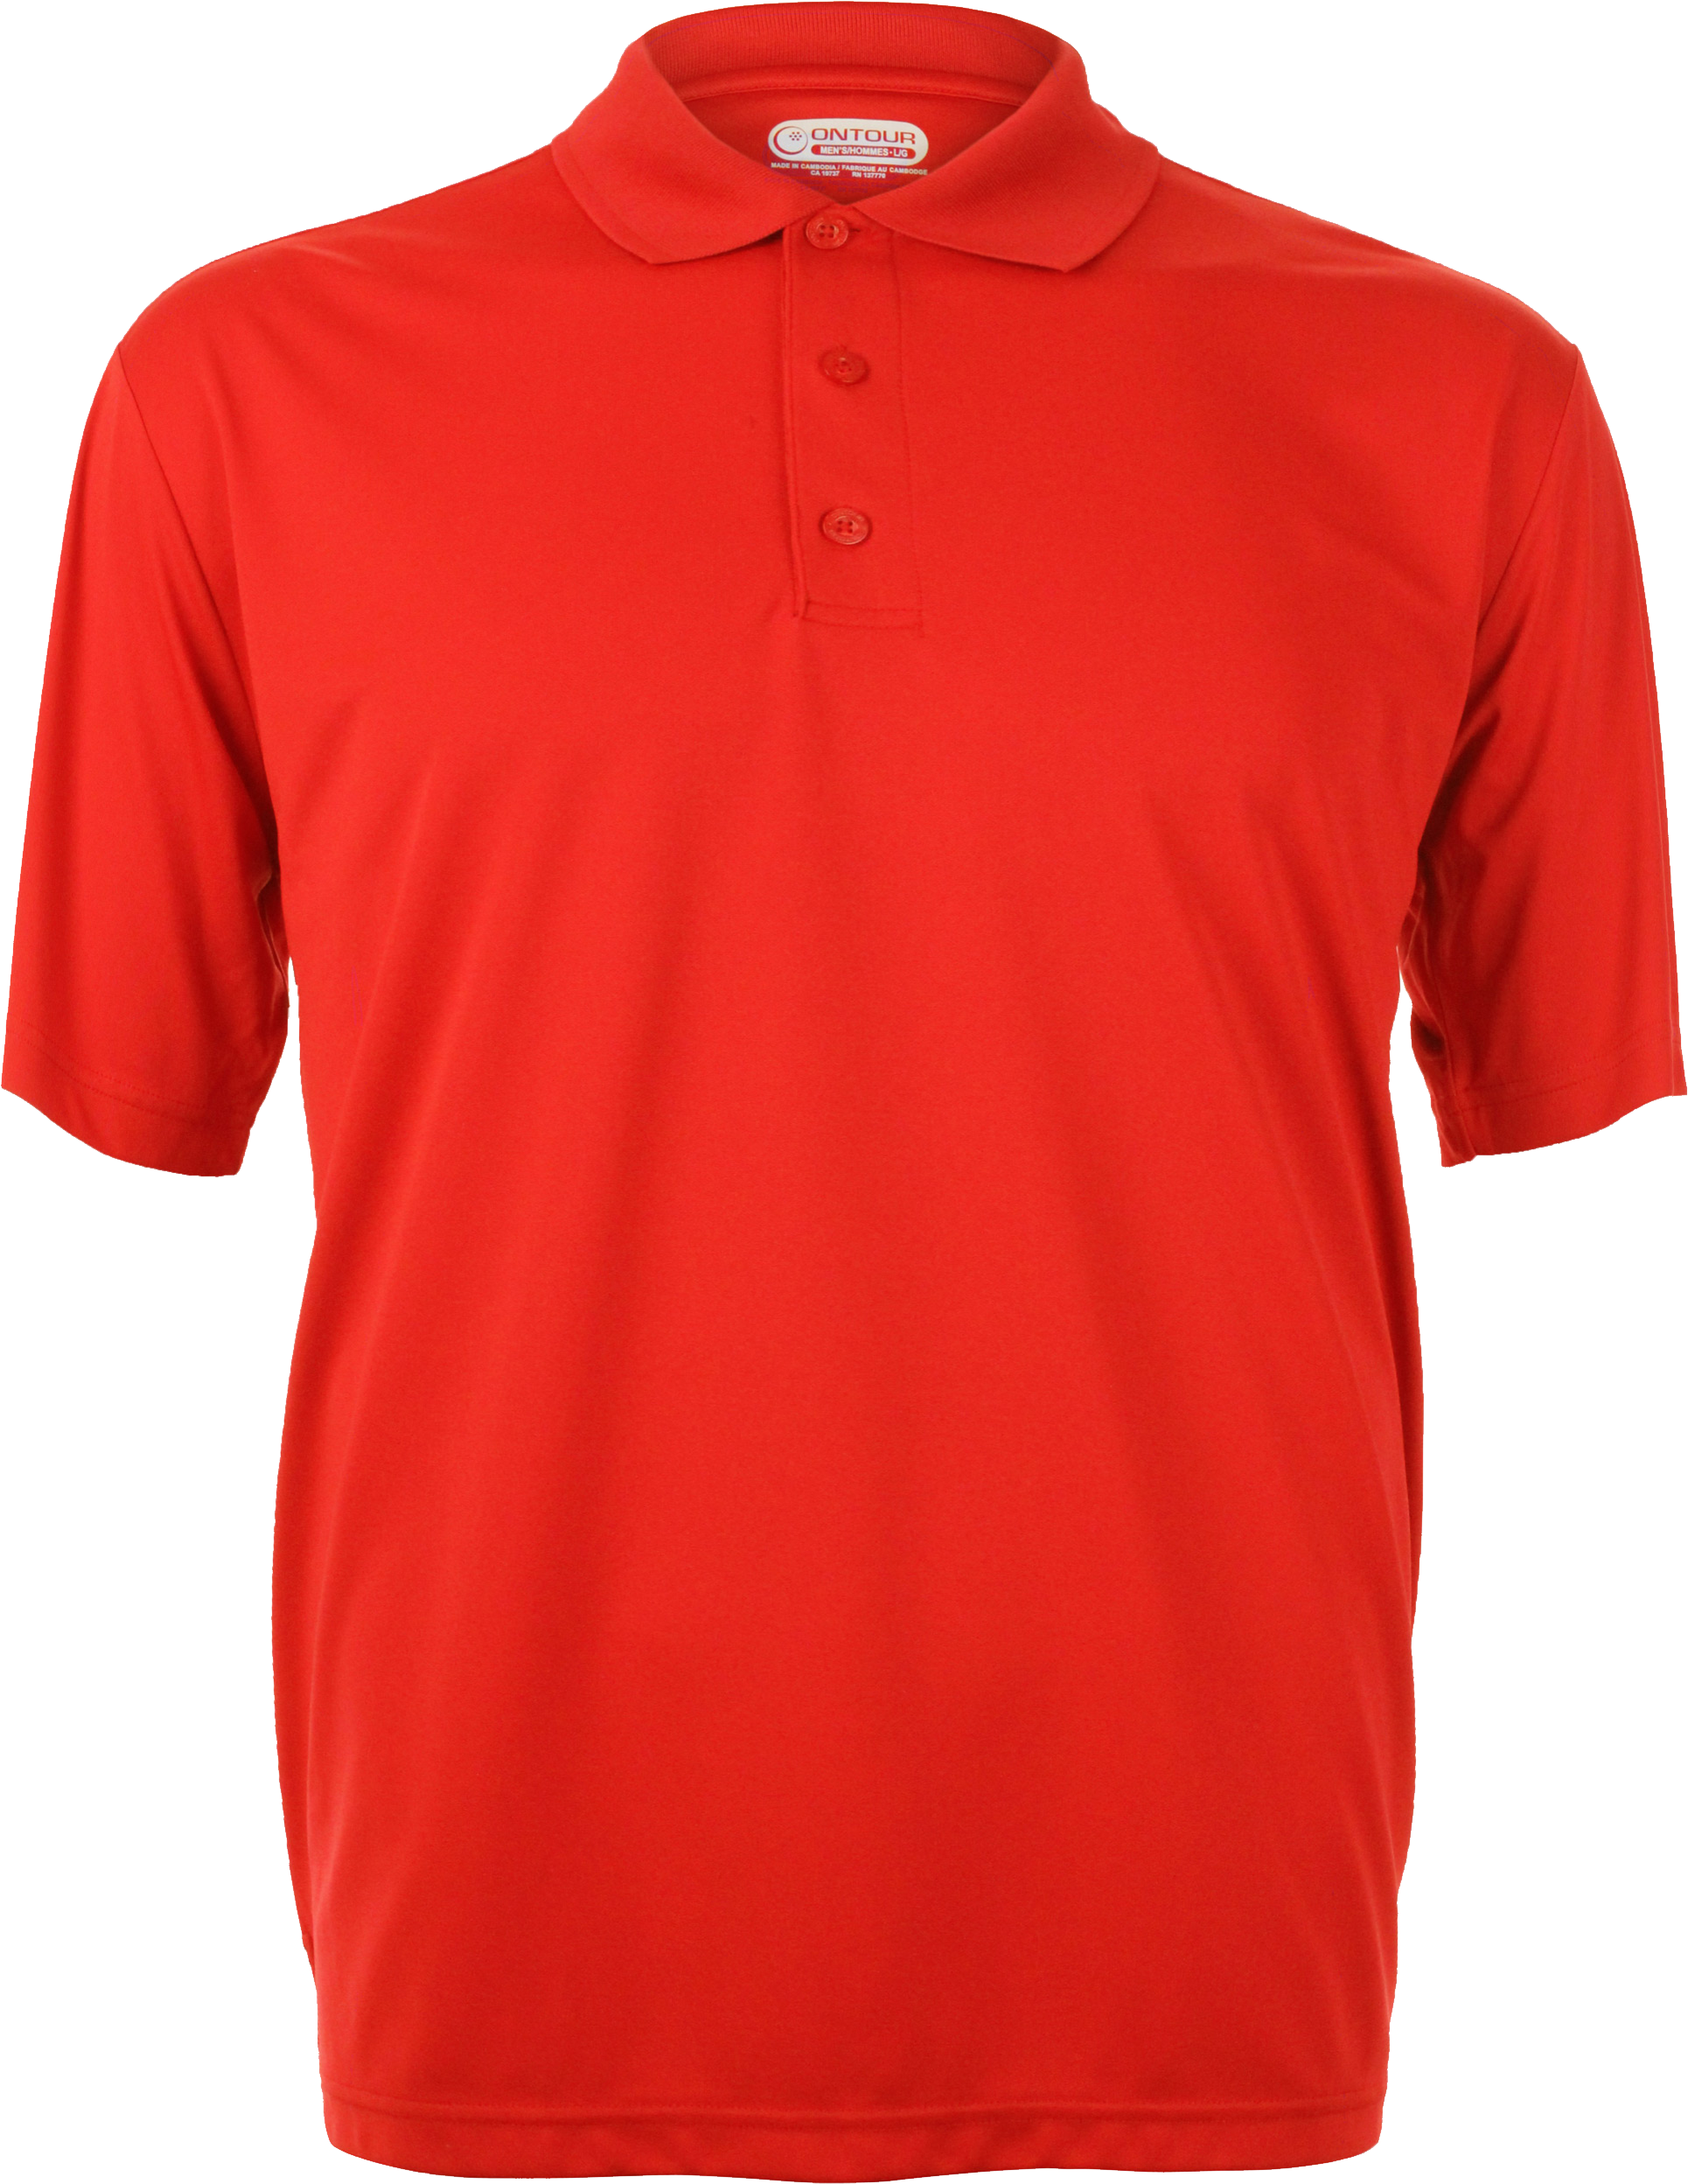 shirt png images free download